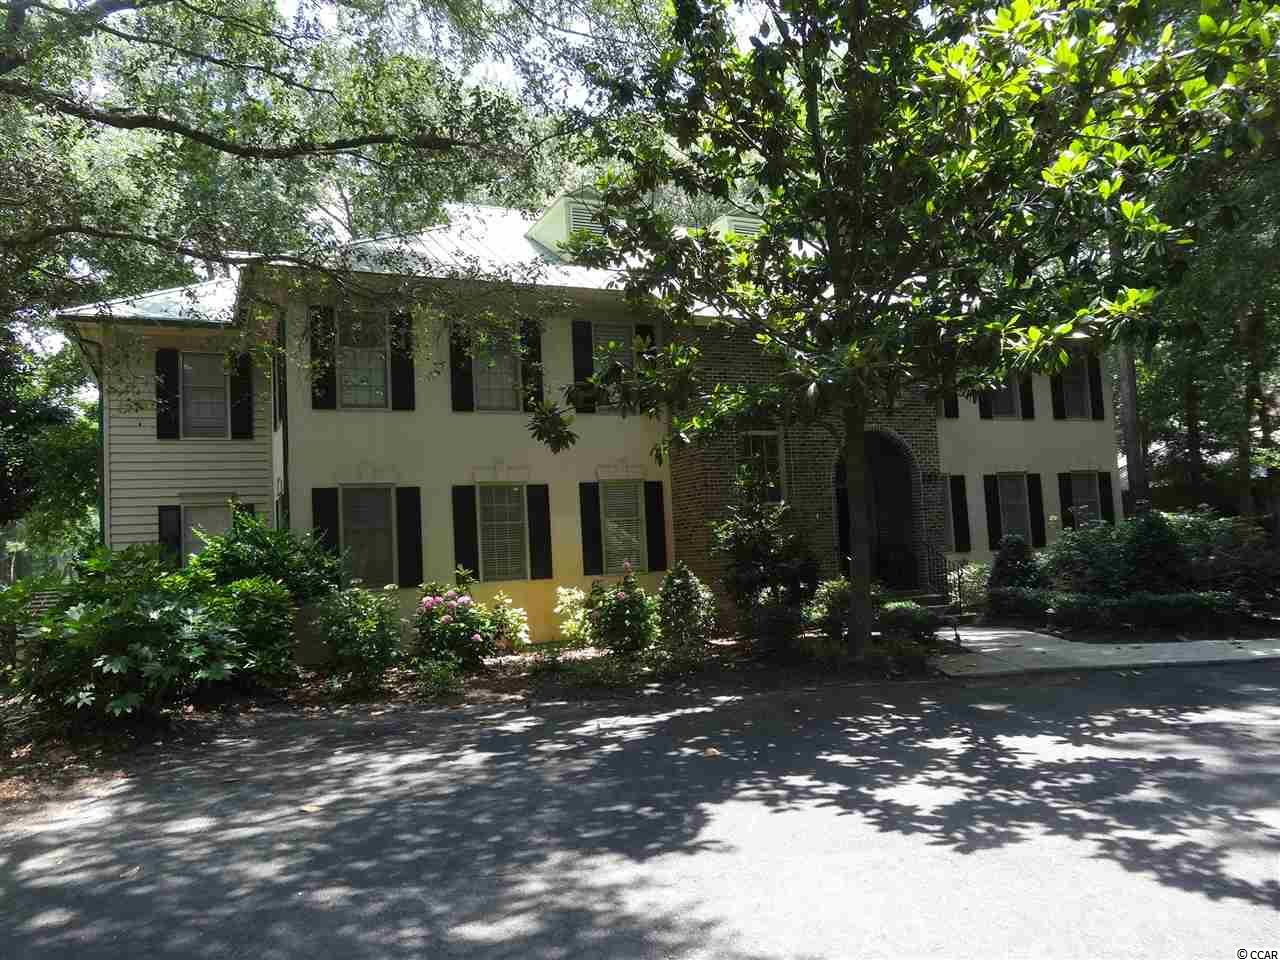 Charming 2nd floor, two bedroom, two and one half bath condo located on the 9th  fairway of Pawleys Plantation Golf and Country Club, a Jack Nicklaus Signature Golf Course, is now available. Villa offers two master bedrooms, Great-Room with fireplace (wood burning or can be converted to gas logs). Formal dining room off of kitchen is currently used as a den.  Other features include a laundry closet with washer & dryer, wet bar, large screened in porch and two decks that overlook the golf course. Wood, tile, and carpet flooring. Ceiling fans in both bedrooms, great room, and dining room.  Can be used as a primary residence, 2nd home, or rental.  Golf and Country Club Information available upon request. Historic Charleston approximately 65 miles south, Myrtle Beach approximately 25 miles north, and Georgetown 8 miles south. Pawleys Island Famous Beaches and Hammock Shops, & upscale and casual dining within minutes.